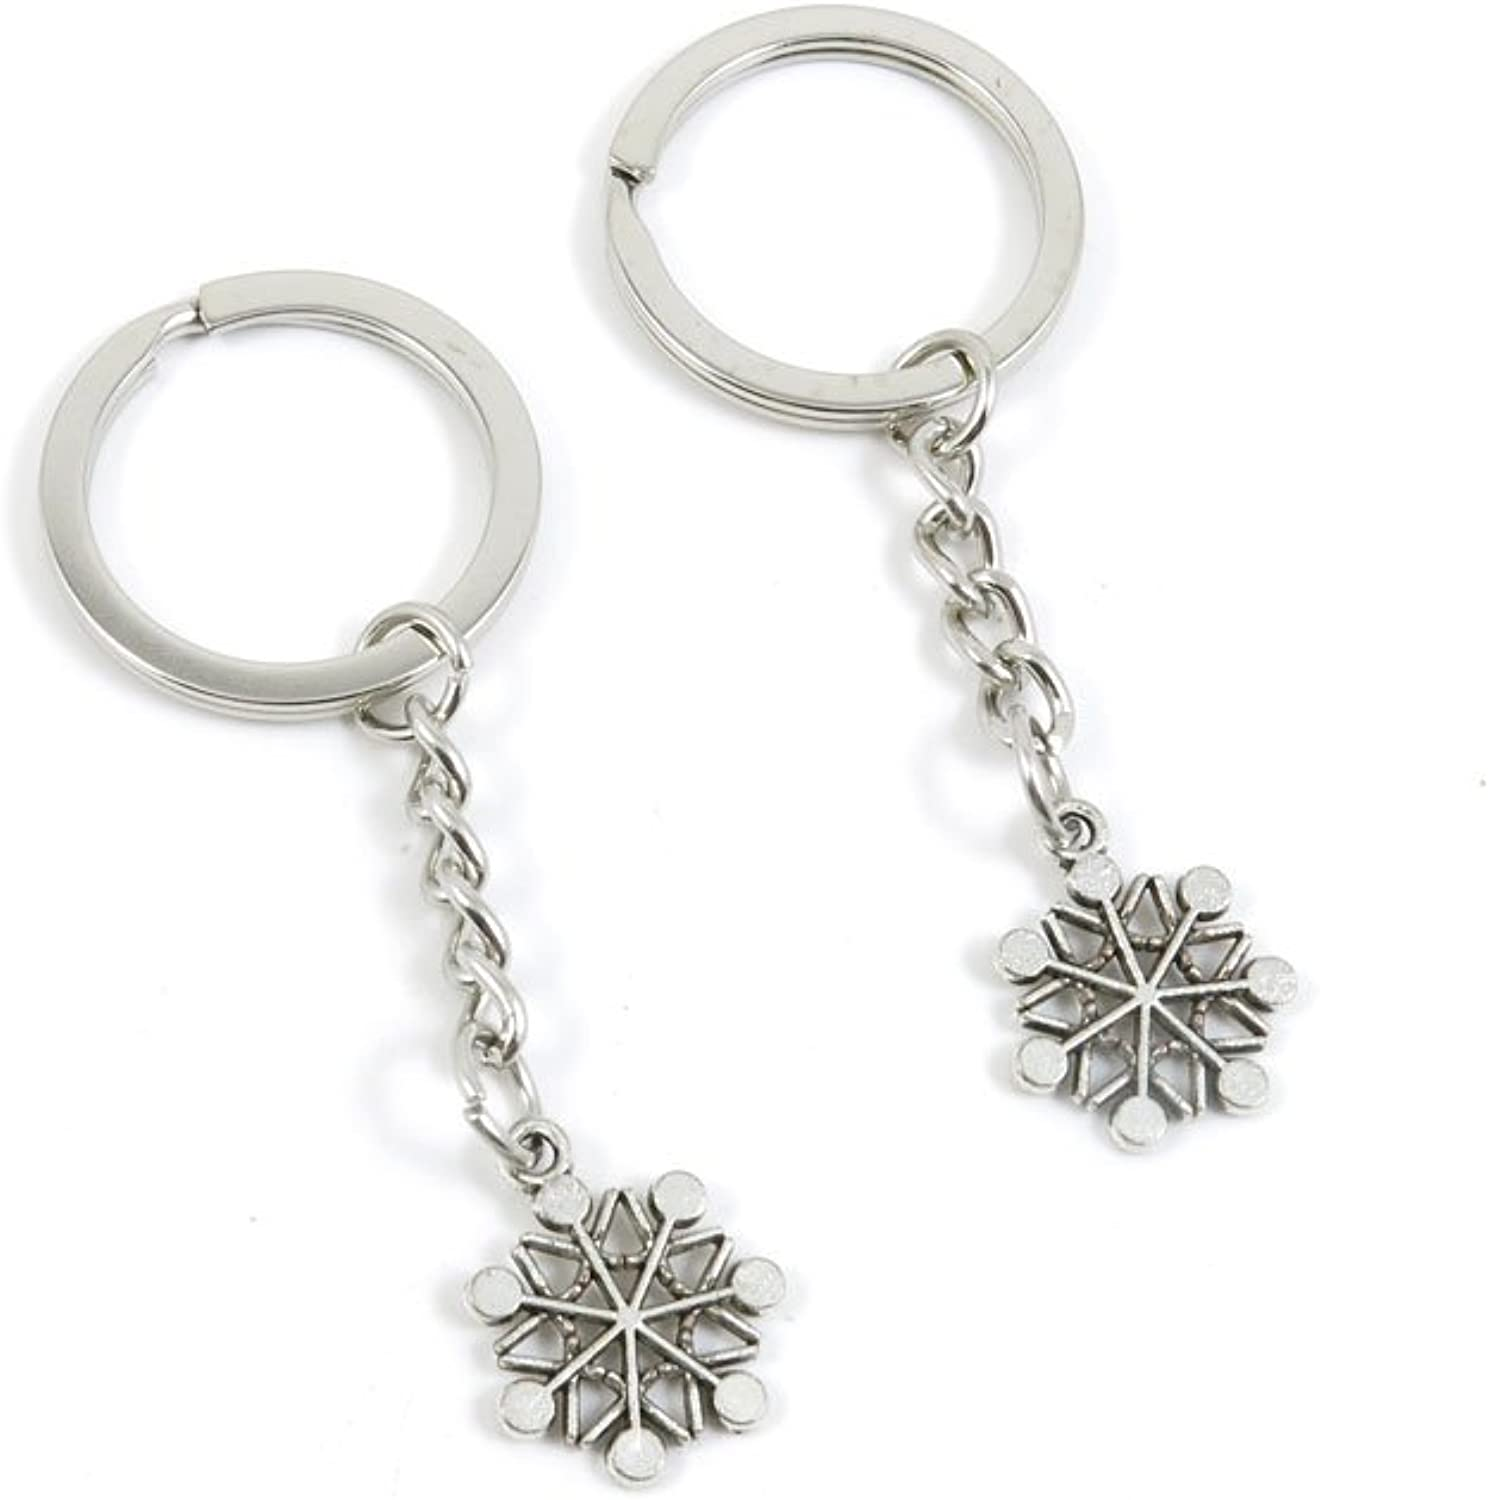 240 Pieces Fashion Jewelry Keyring Keychain Door Car Key Tag Ring Chain Supplier Supply Wholesale Bulk Lots S4SF8 Snowflake Snow Flake